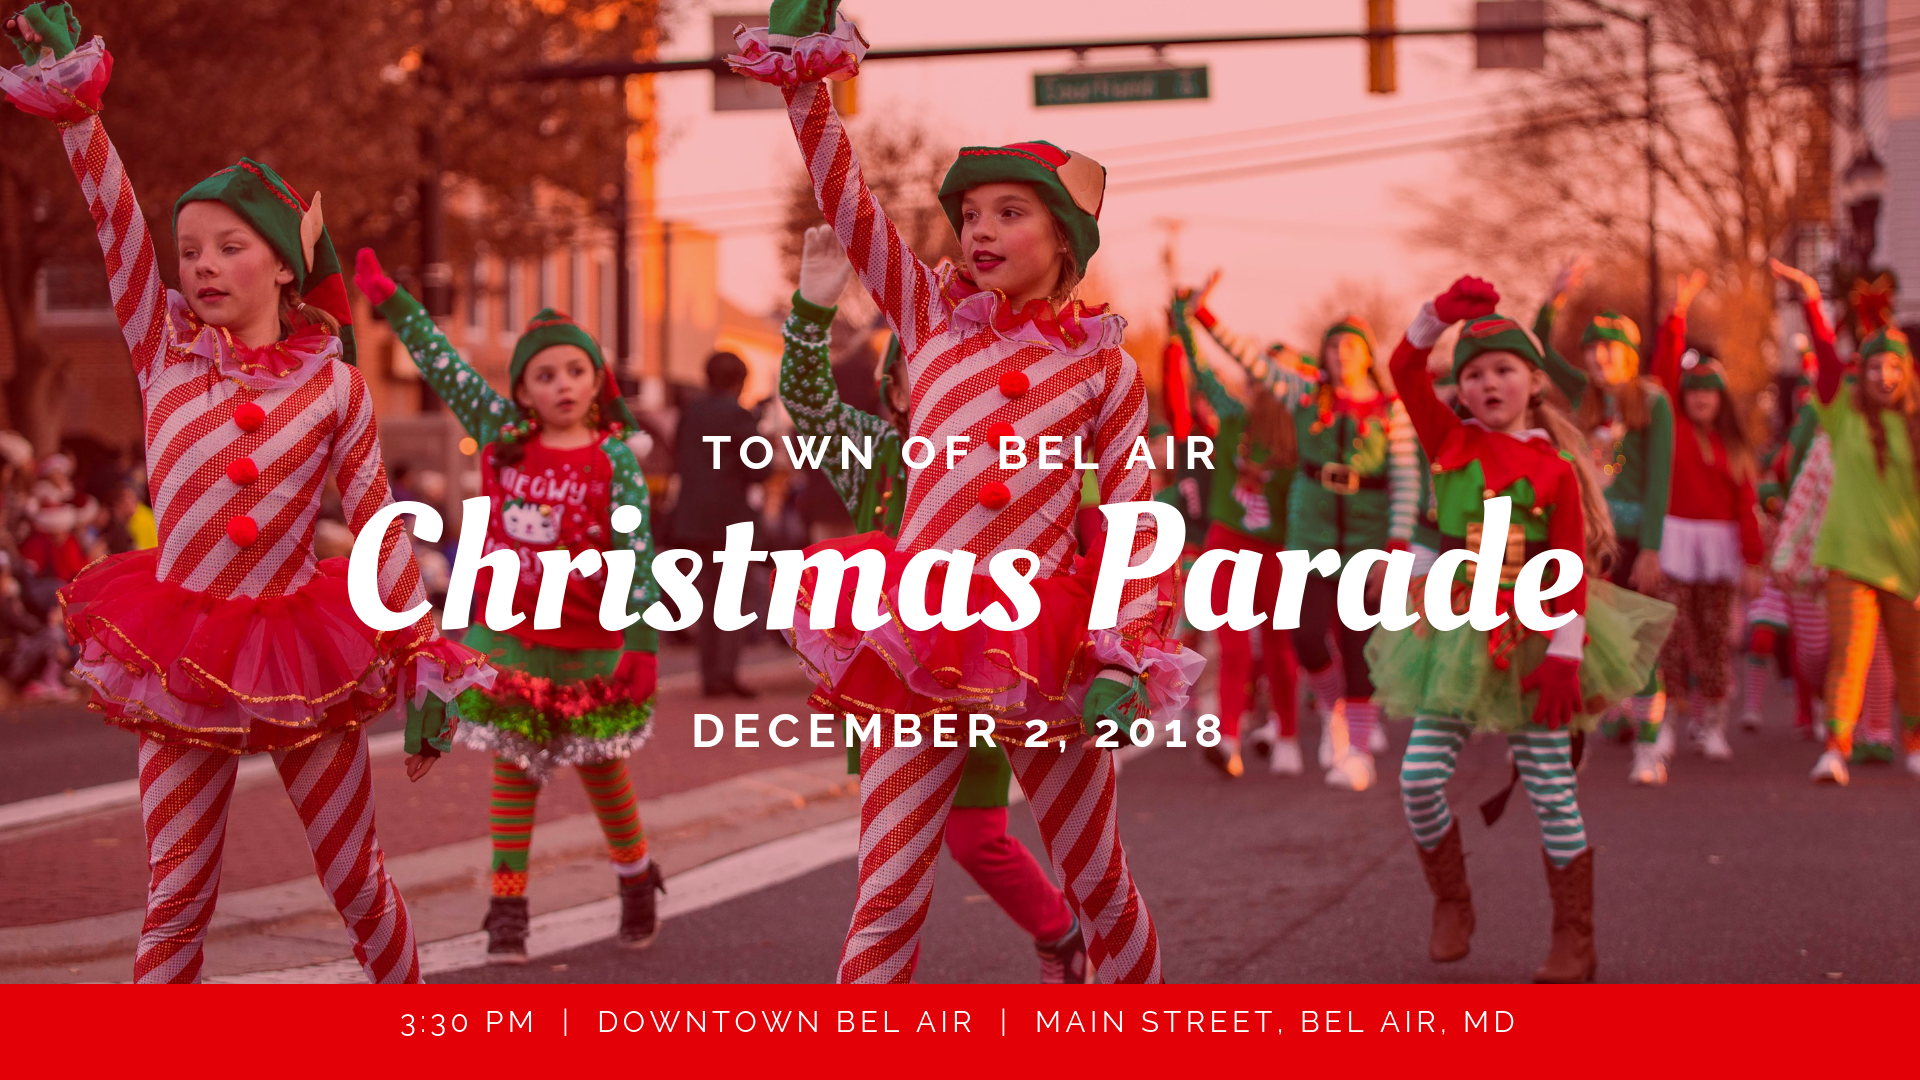 Christmas Parade Graphic 2018 3.30 PM